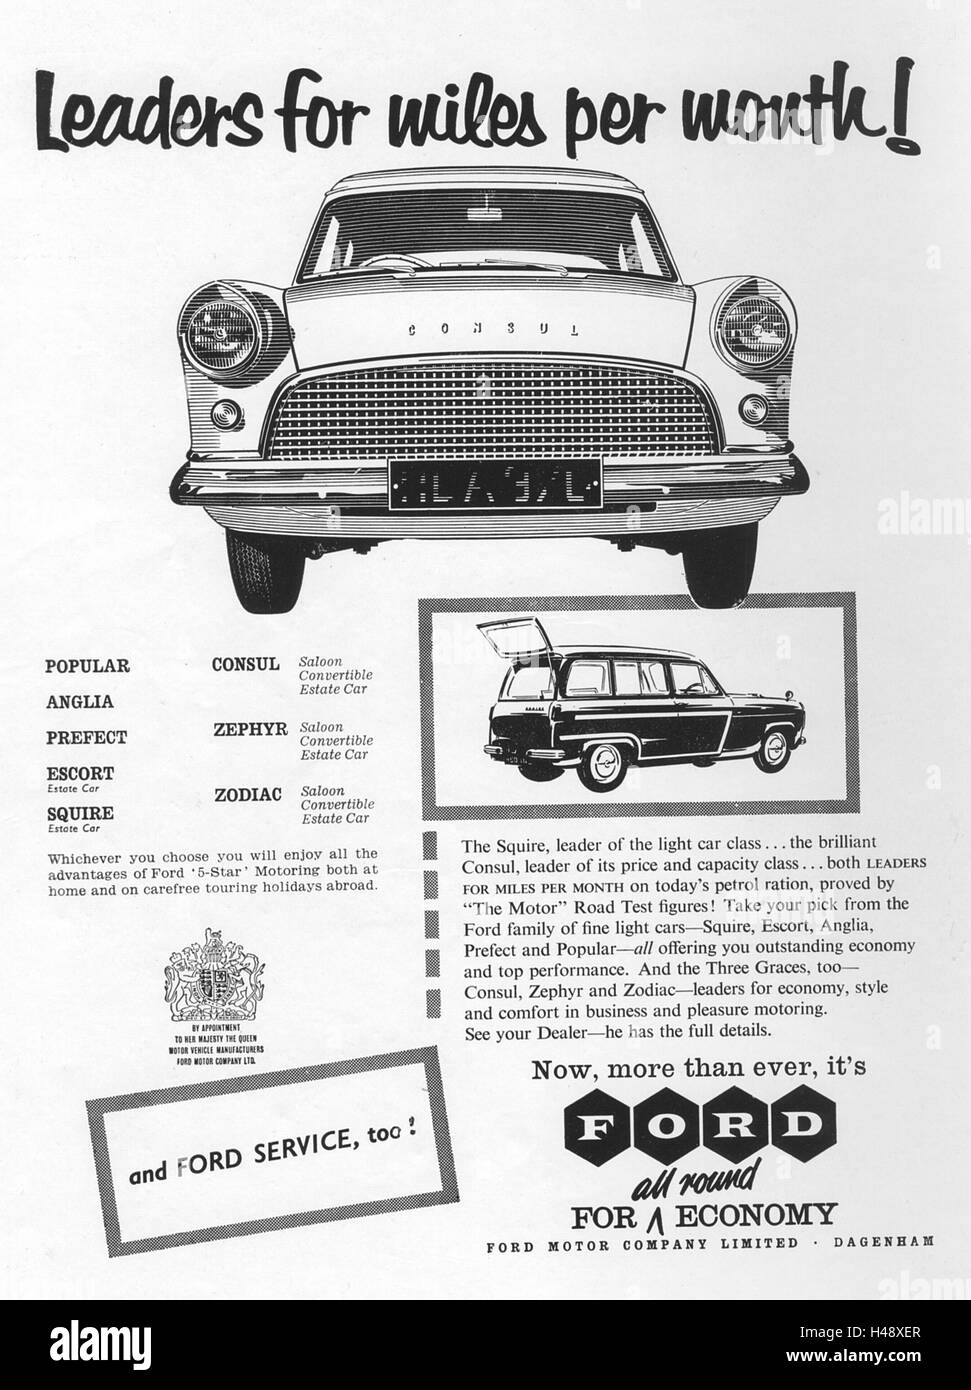 Advert for Ford cars from a Motor Sport magazine in 1957. - Stock Image